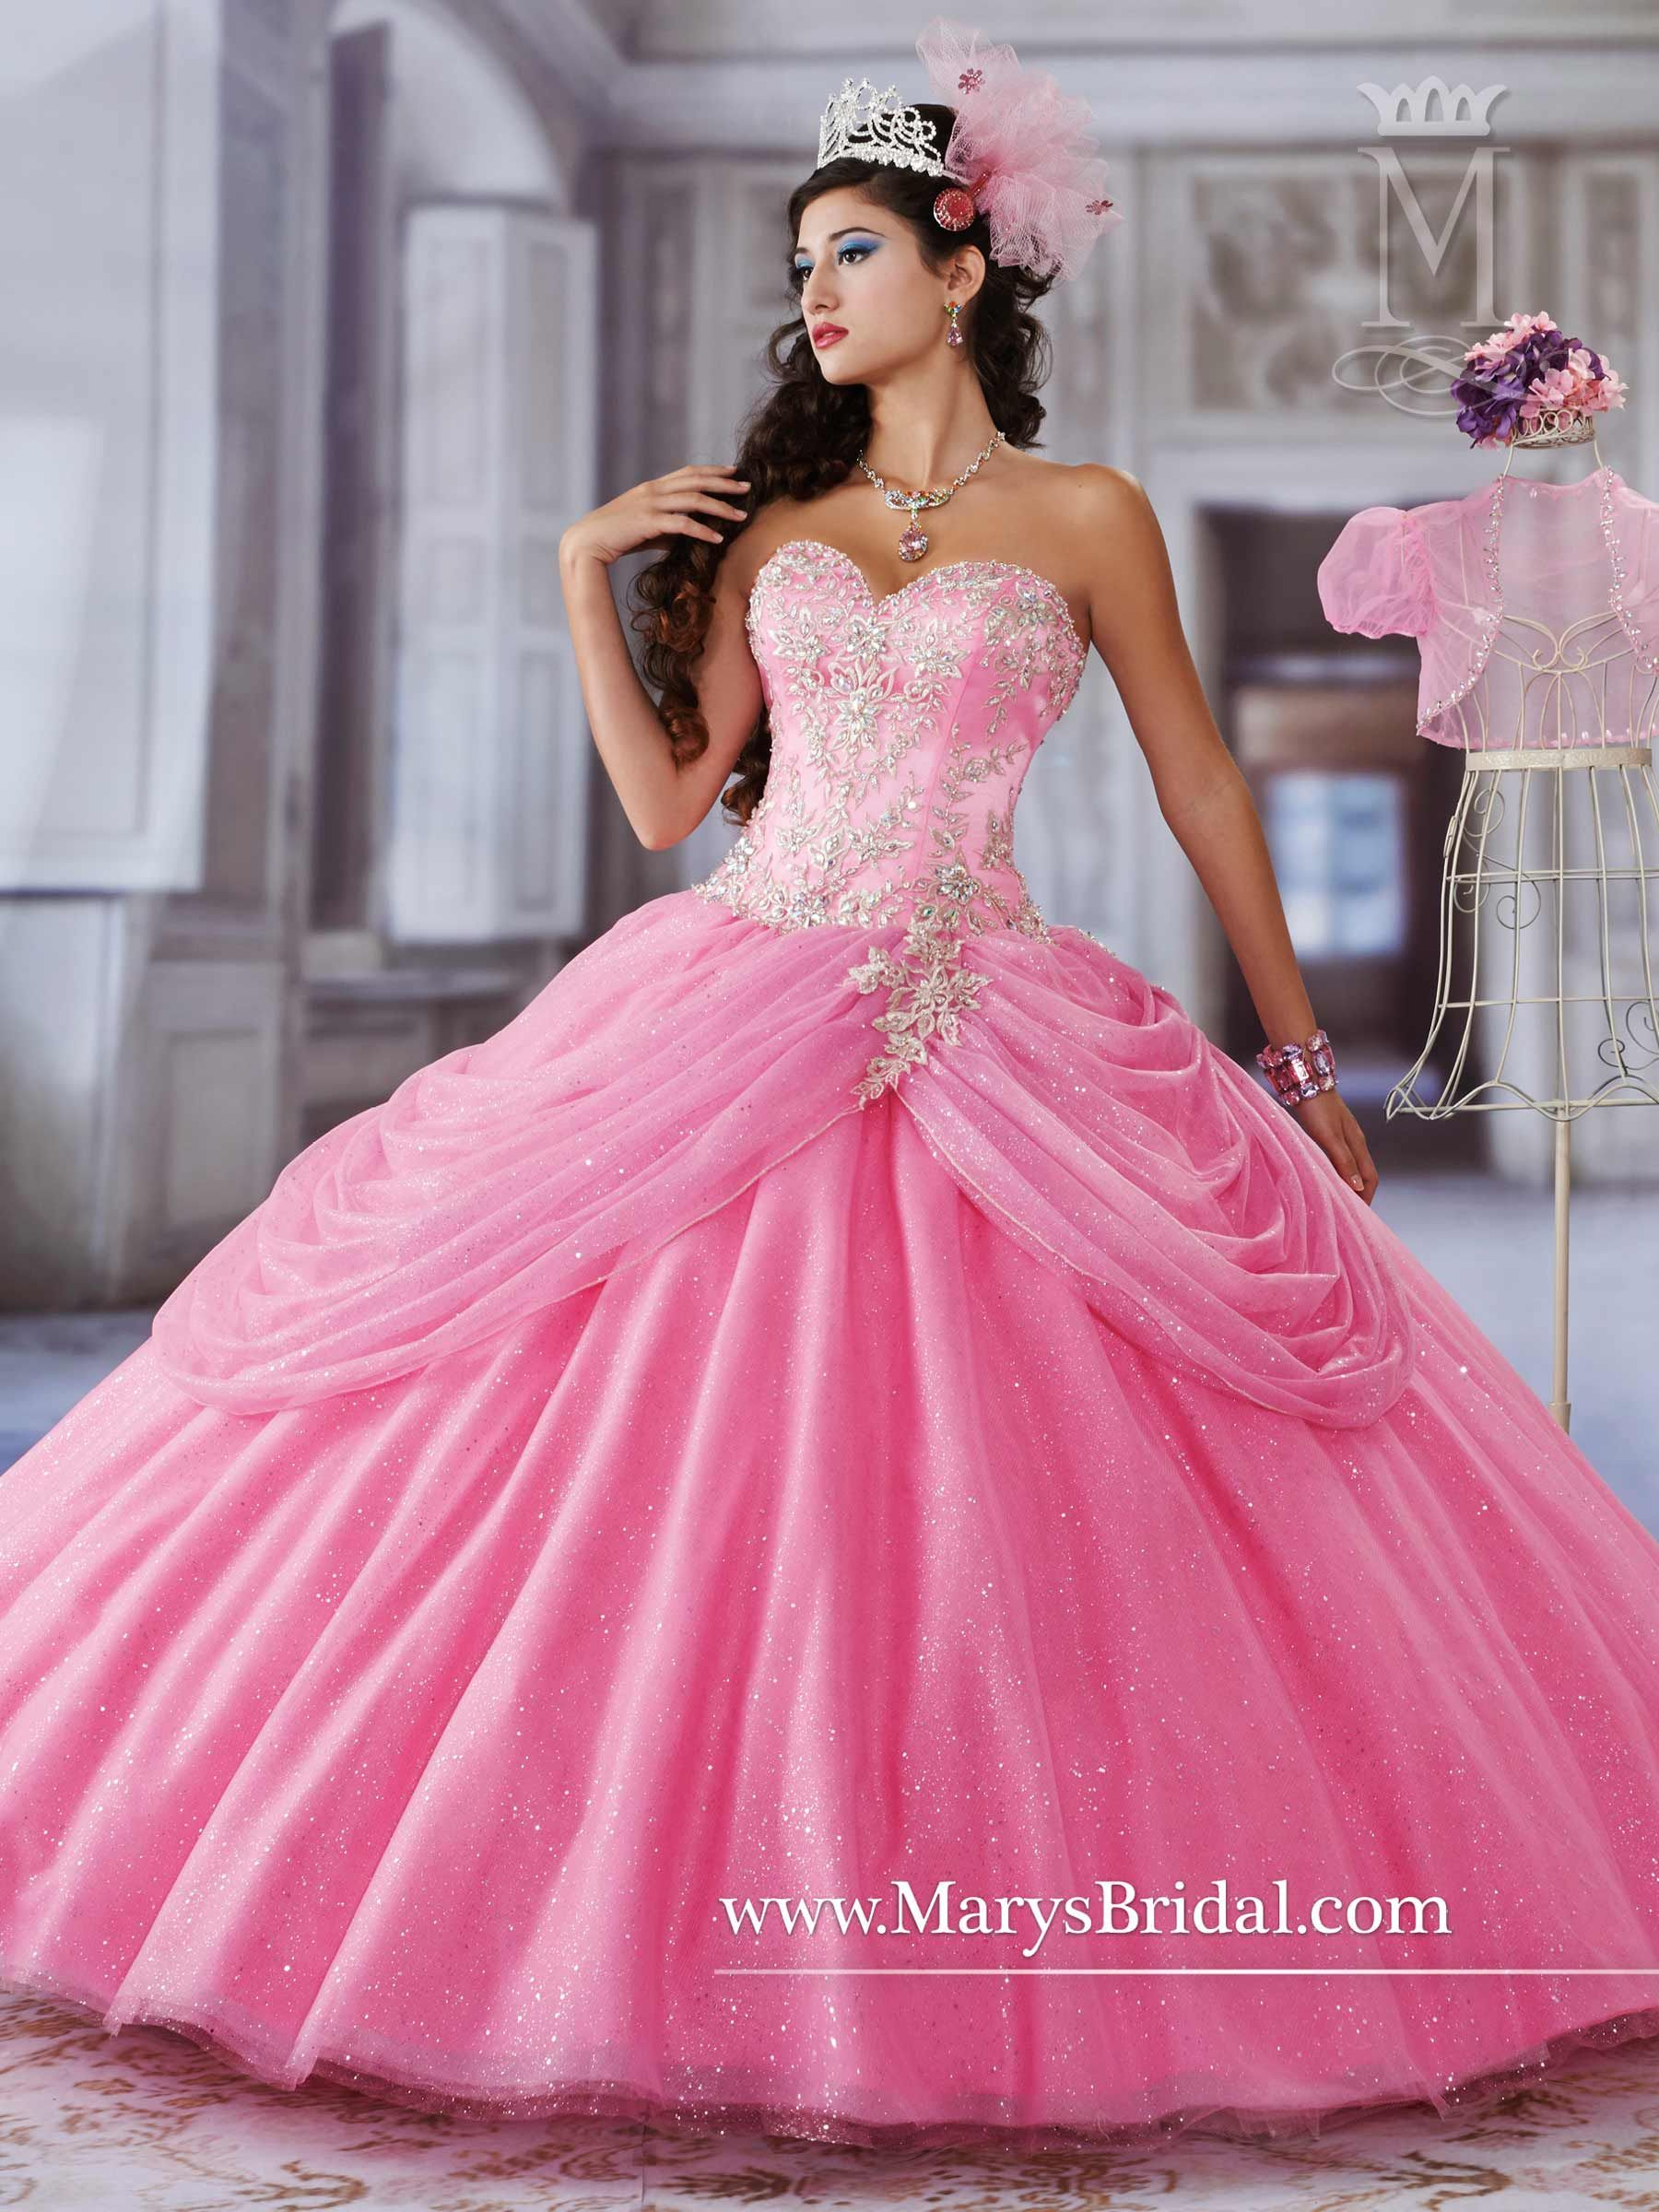 87ccae53be0 Mary s Princess collection of Quinceanera dresses